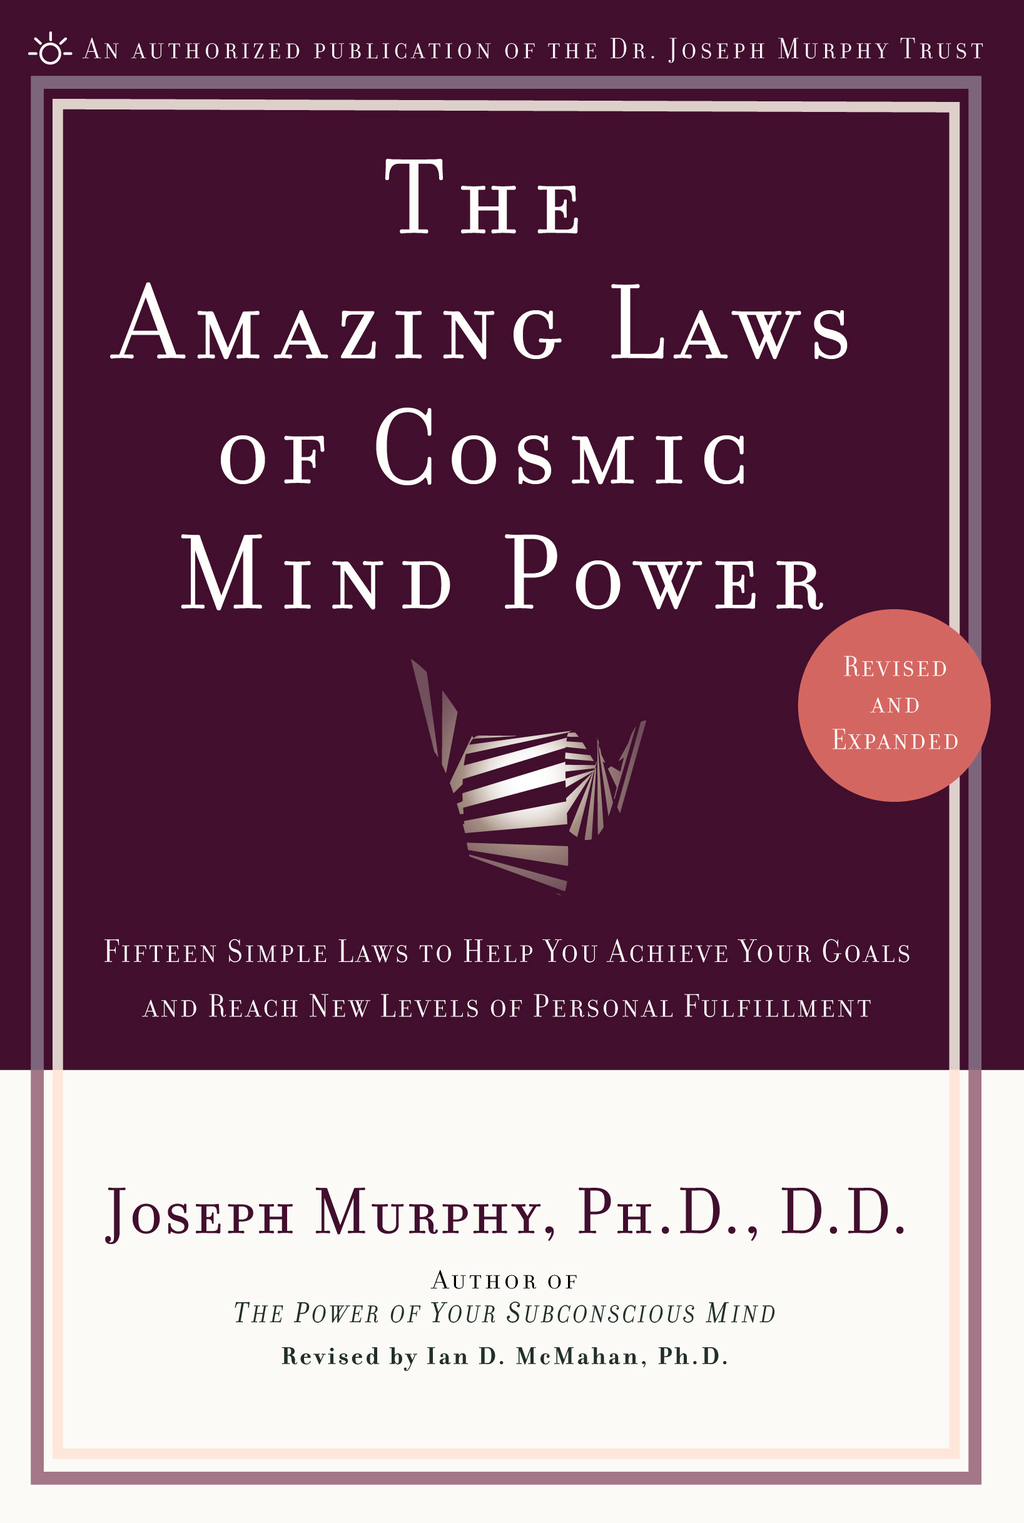 Amazing Laws of Cosmic Mind Power By: Joseph Murphy, Ph.D., D.D.